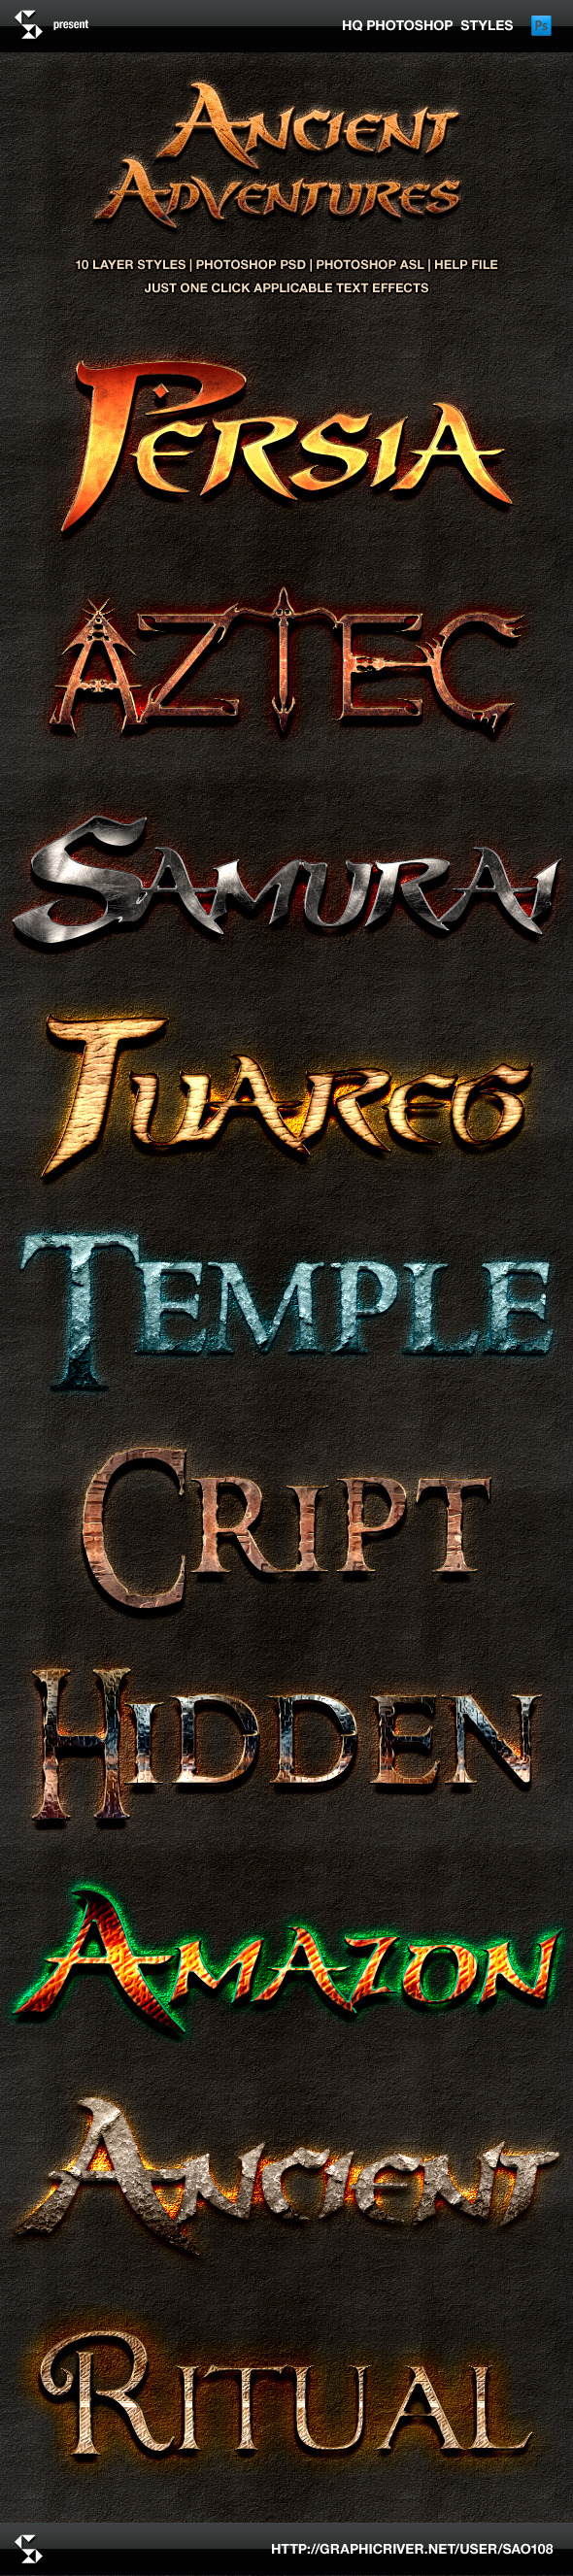 Ancient Adventures Text Effects - Text Effects Styles